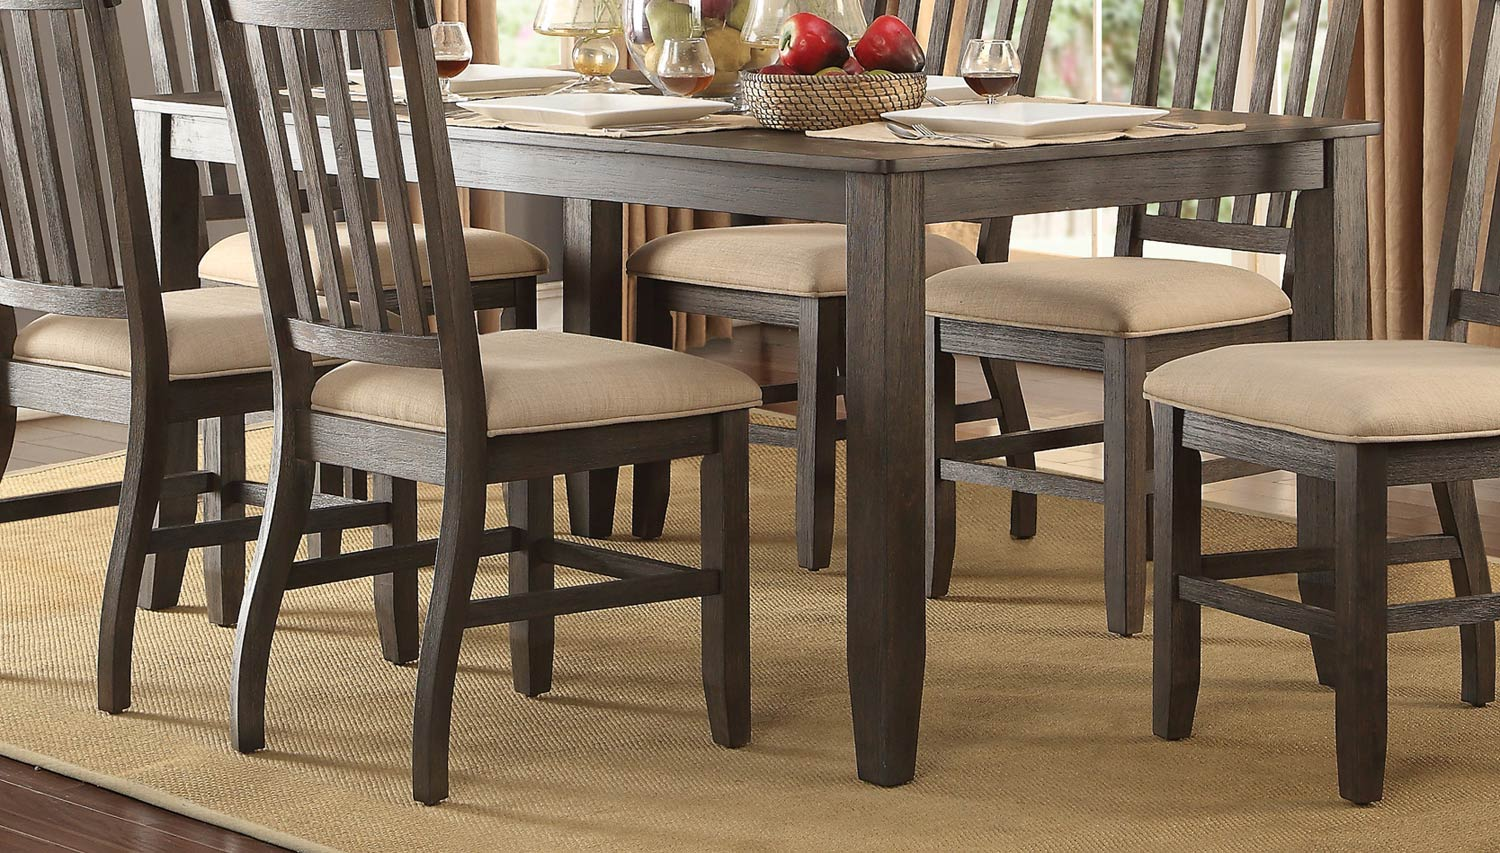 Homelegance Nantes Dining Table - Wire Brushed